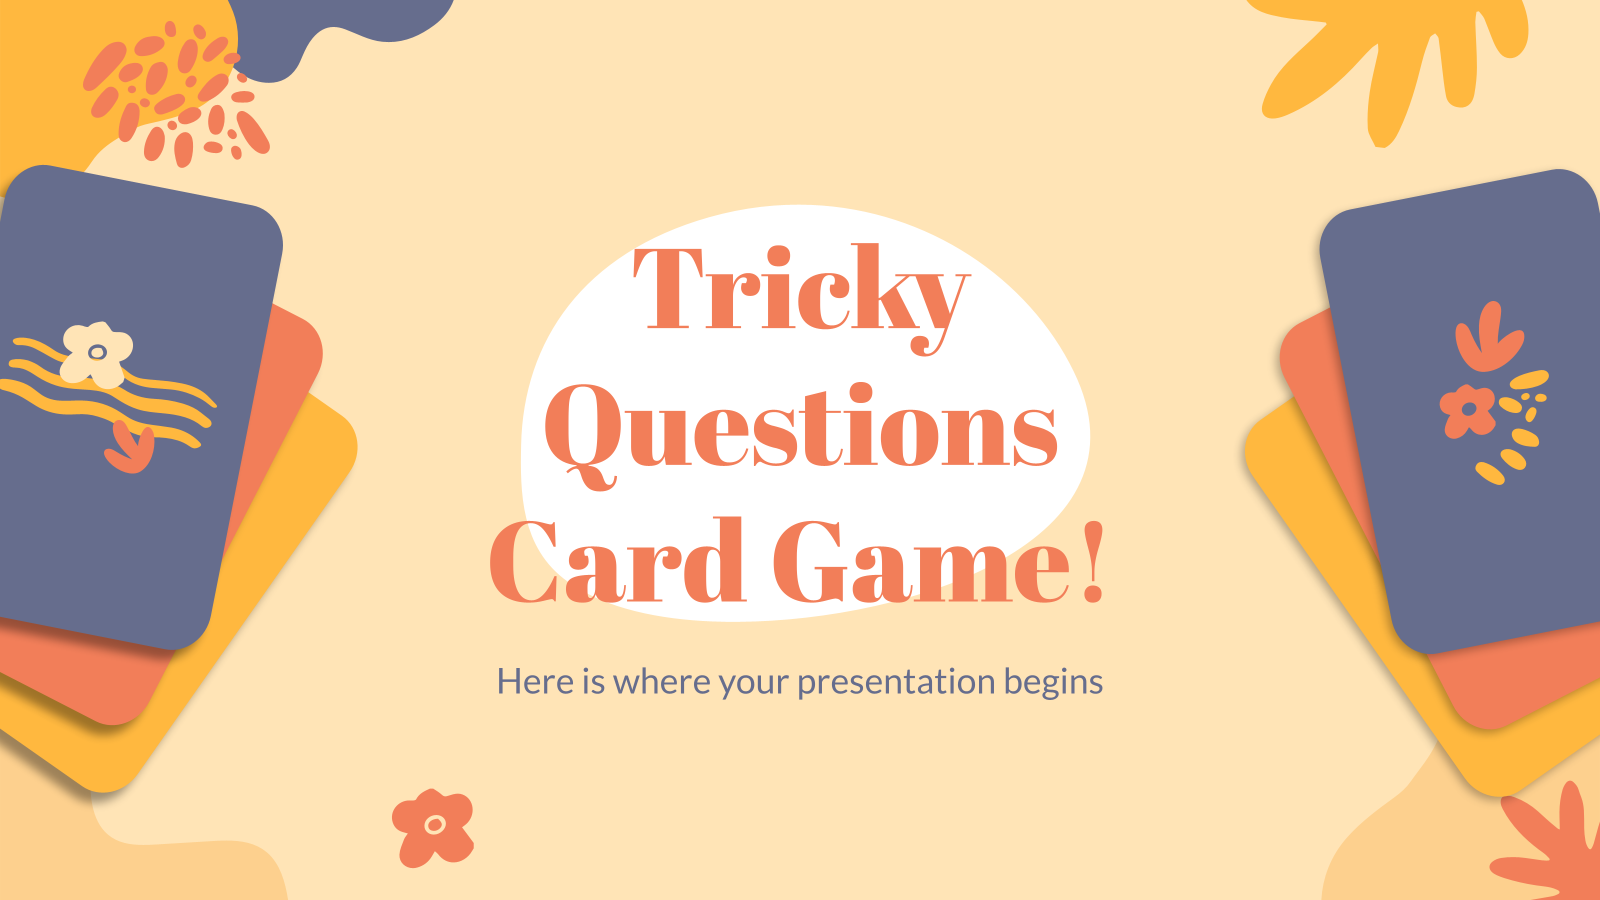 Tricky Questions Card Game! presentation template